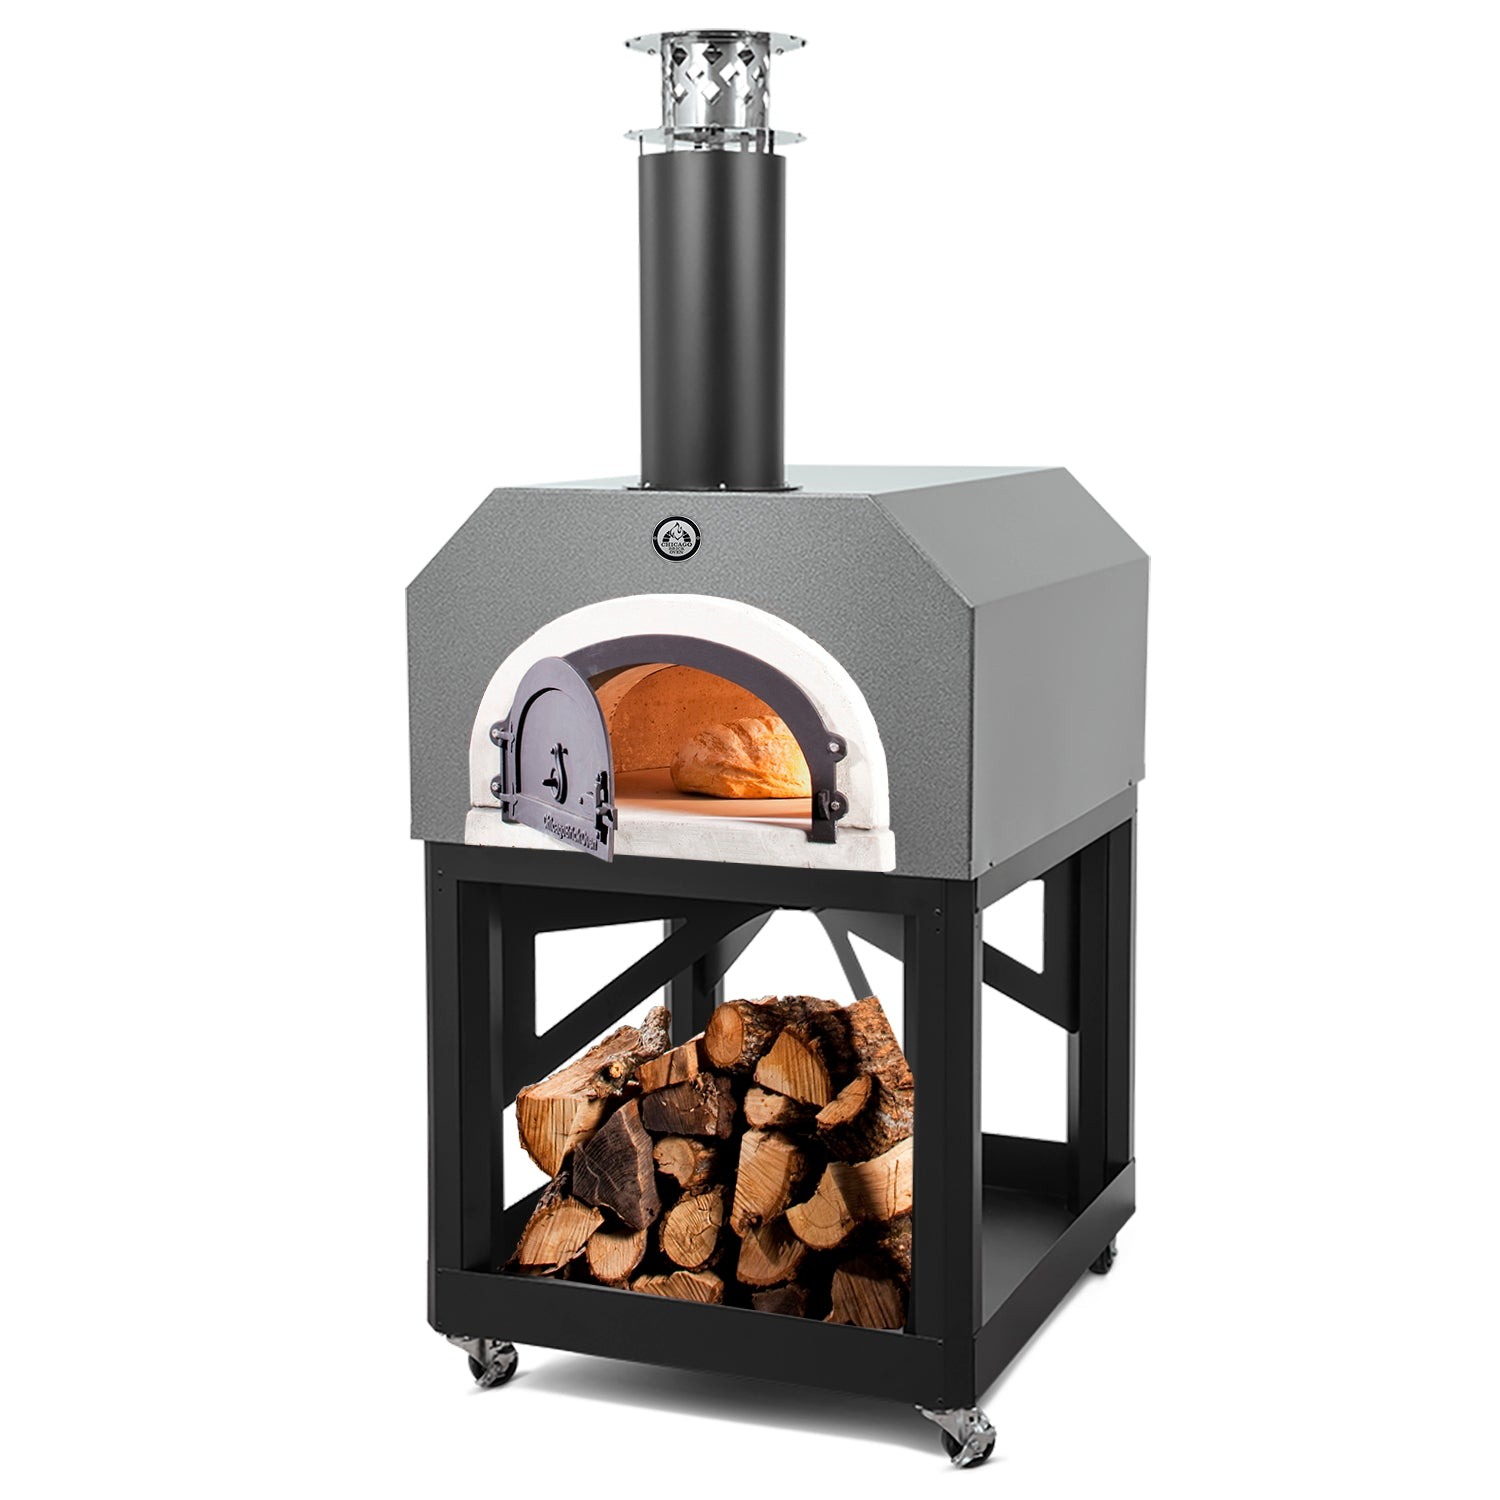 CBO 750 Mobile Stand | Wood Fired Pizza Oven | Remarkable Cuisine Mobile Home Gas Ovens on mobile home wall oven, mobile home humidifiers, used mobile home ovens, mobile home washing machines, mobile home in wall radio, mobile home gas ranges, mobile home stoves, mobile home oven replacement, mobile home filters, stoves and ovens, mobile home built in ovens, mobile home heat pumps, mobile home gas heaters, mobile home magic chef ovens, 1978 o'keefe merritt wall ovens, mobile home heating, mobile home kitchen appliances, mobile home furnaces, lowe's built in ovens, mobile home fans,